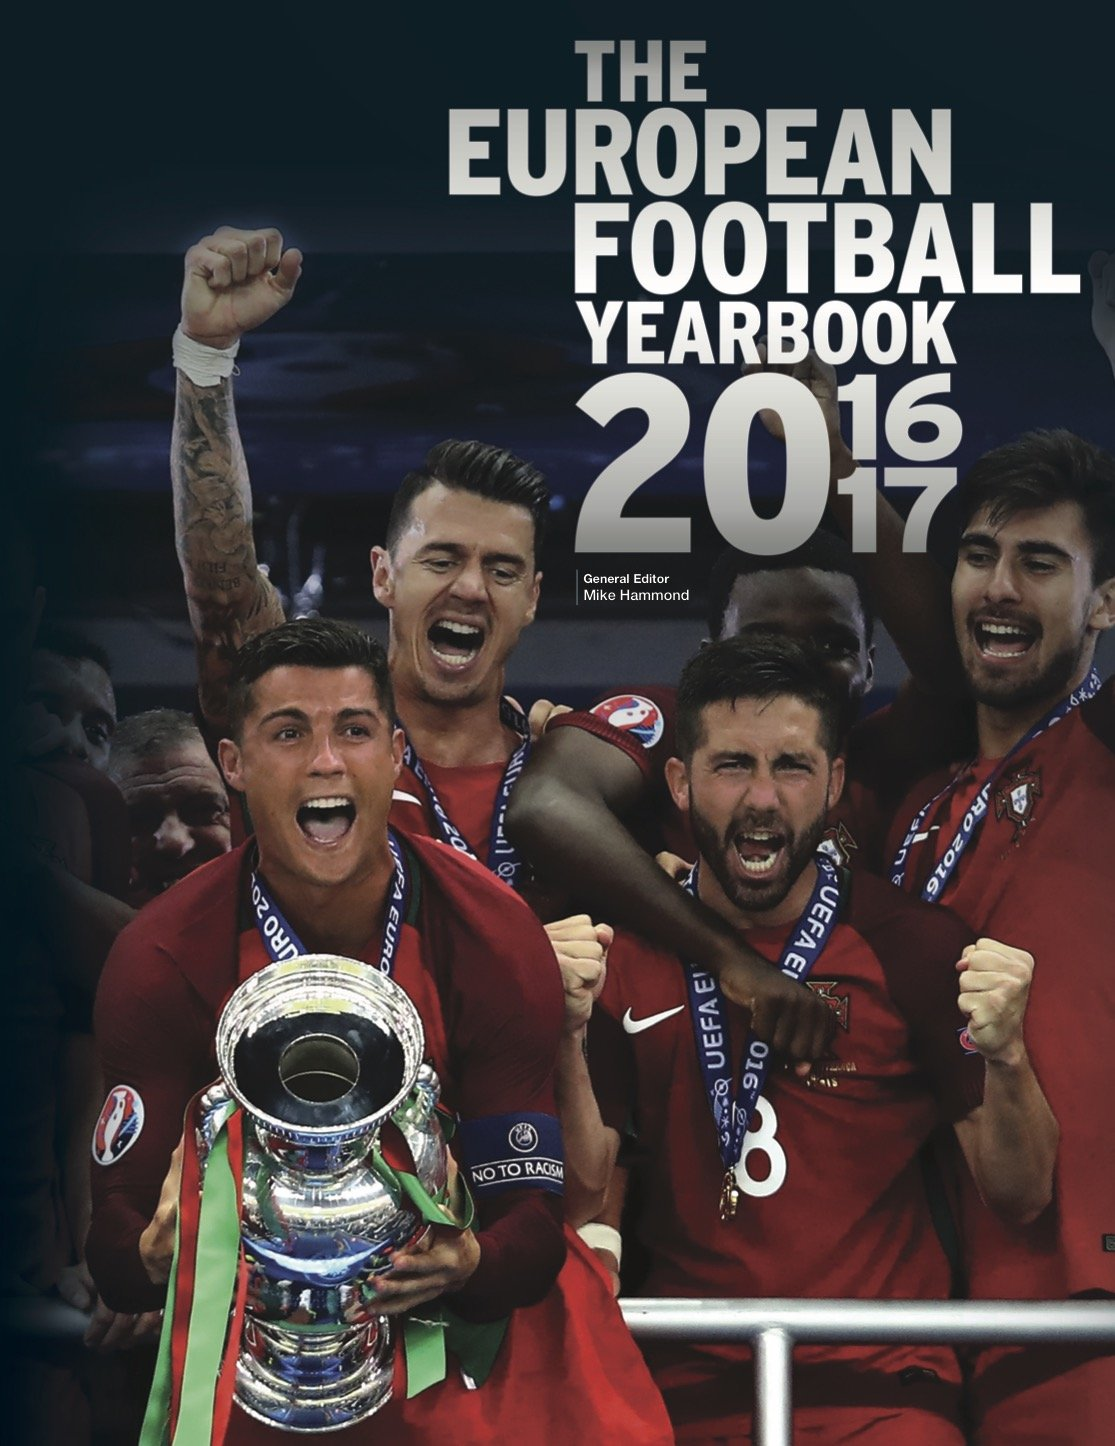 The European Football Yearbook 2016-17